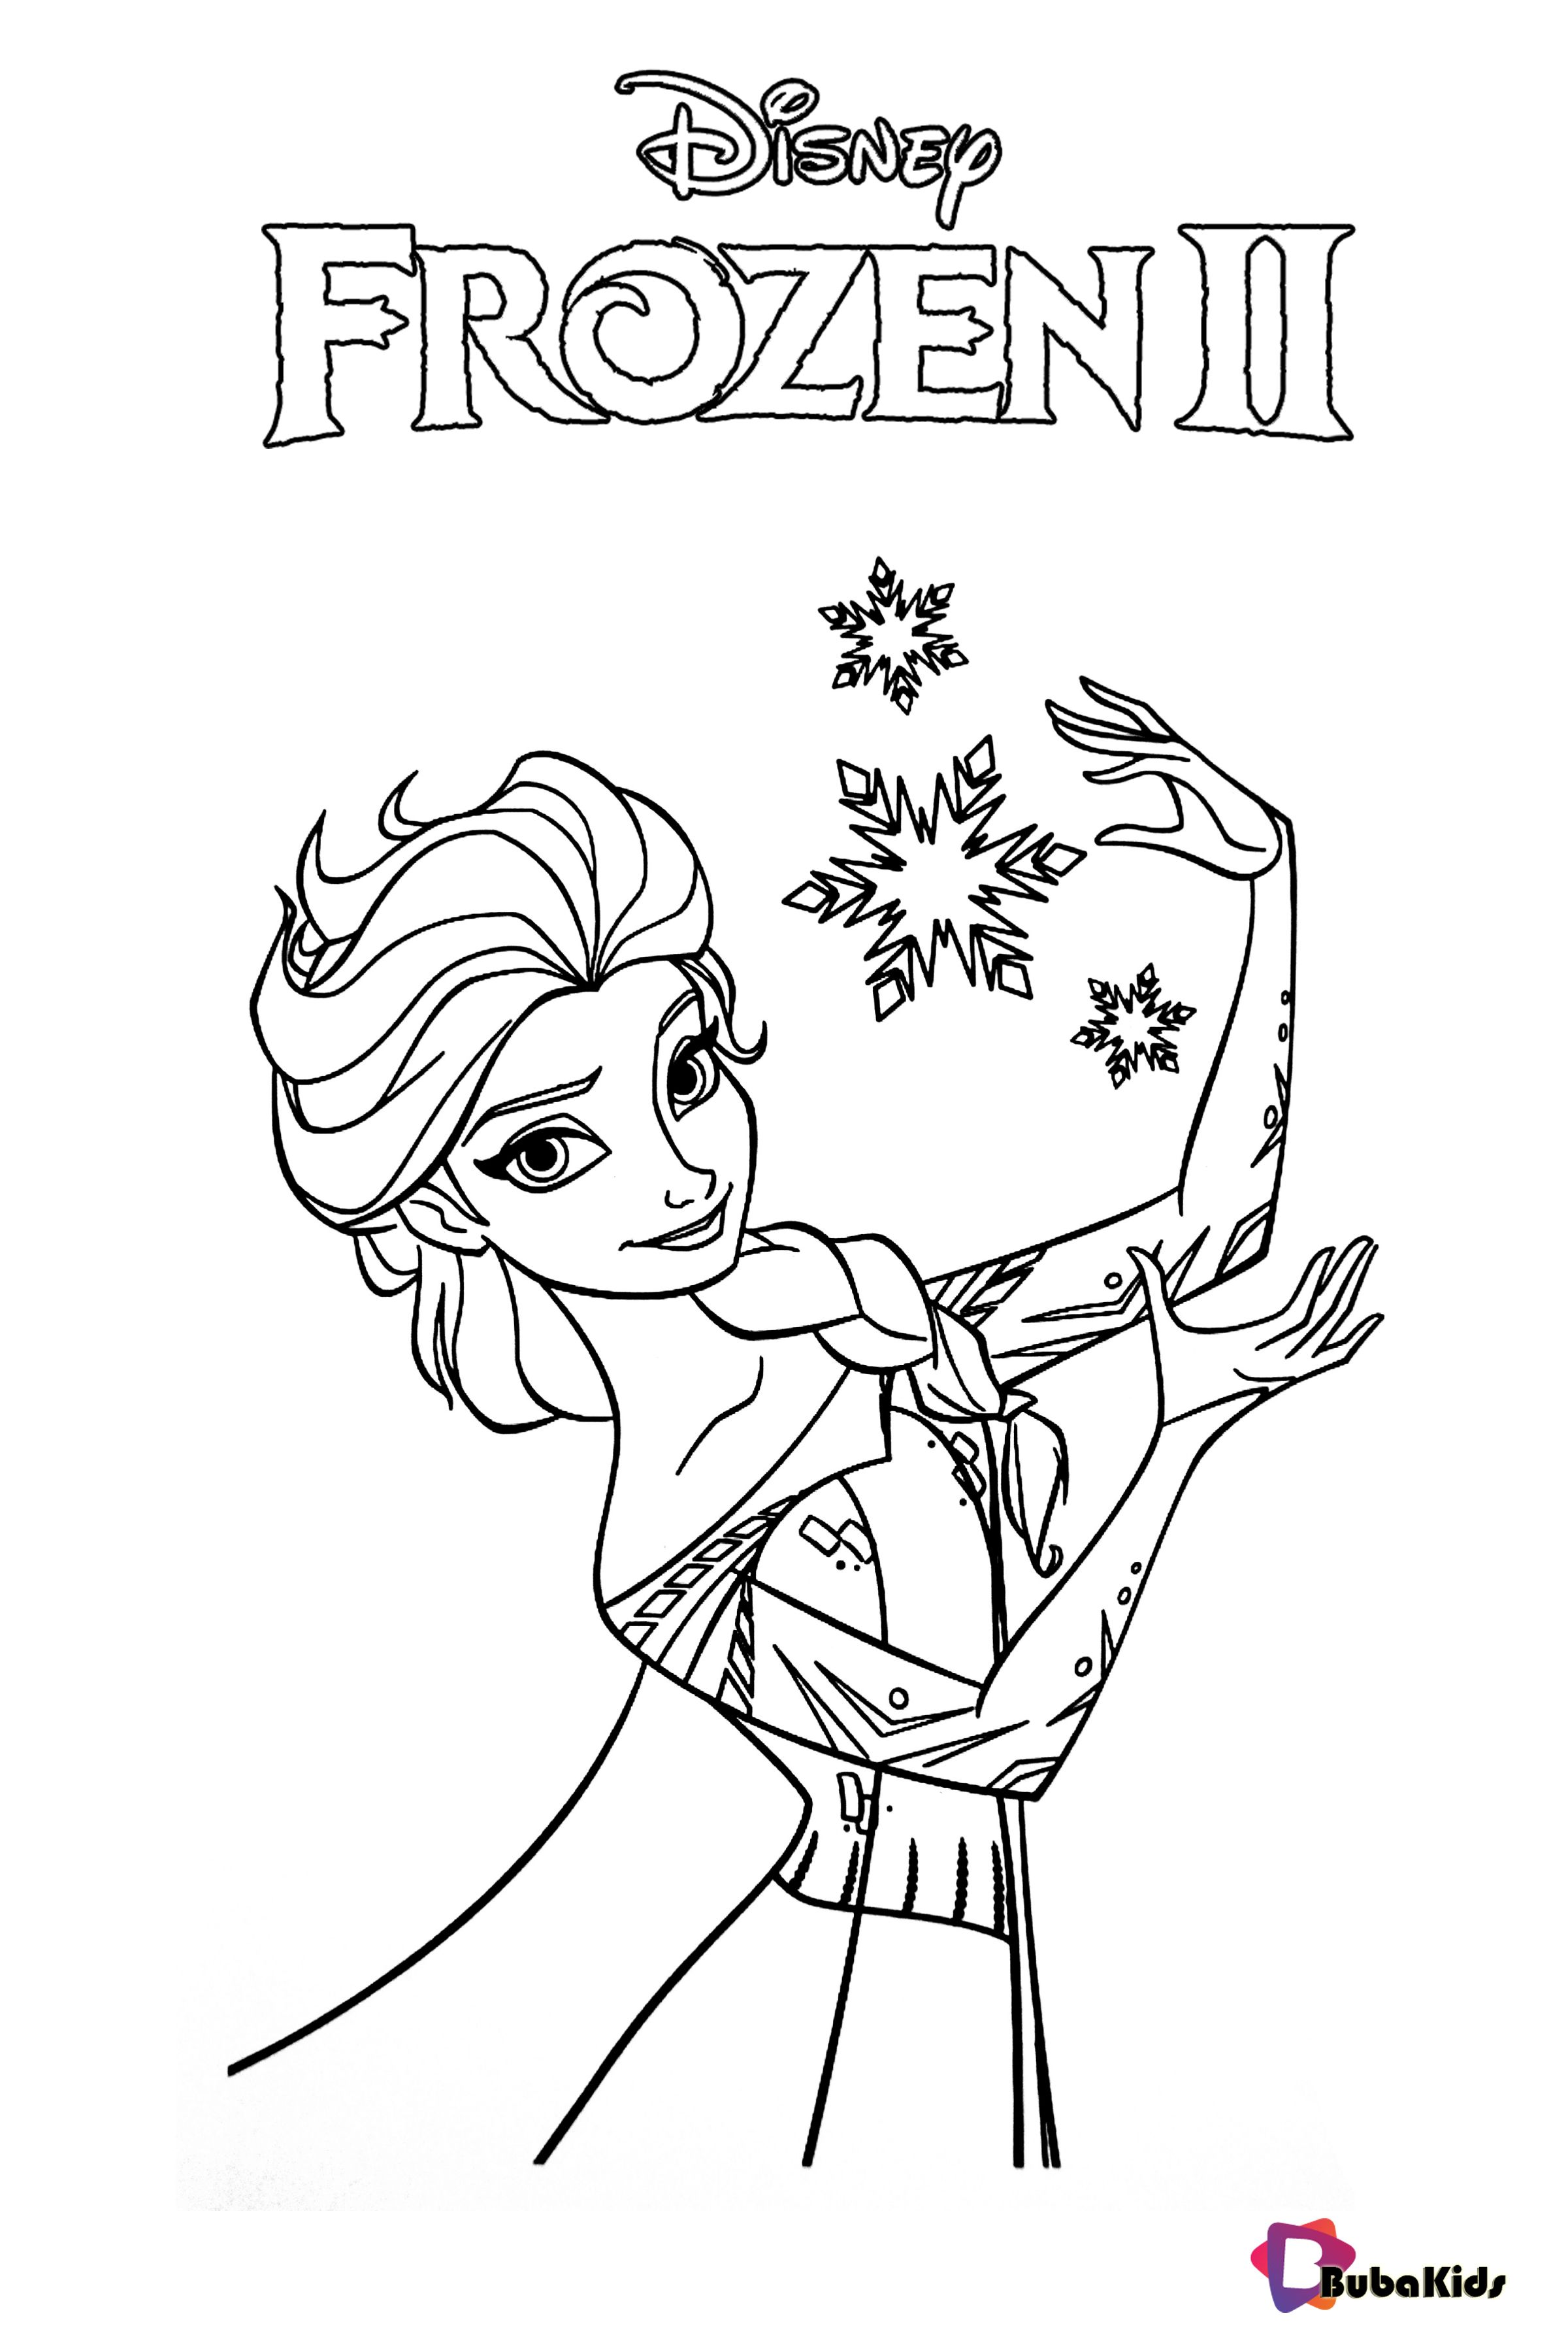 Disney Frozen 2 Anna And Elsa Are Back For New Adventures With Olaf Kristoff Hans And The Reindeer Elsa Coloring Pages Dance Coloring Pages Coloring Books